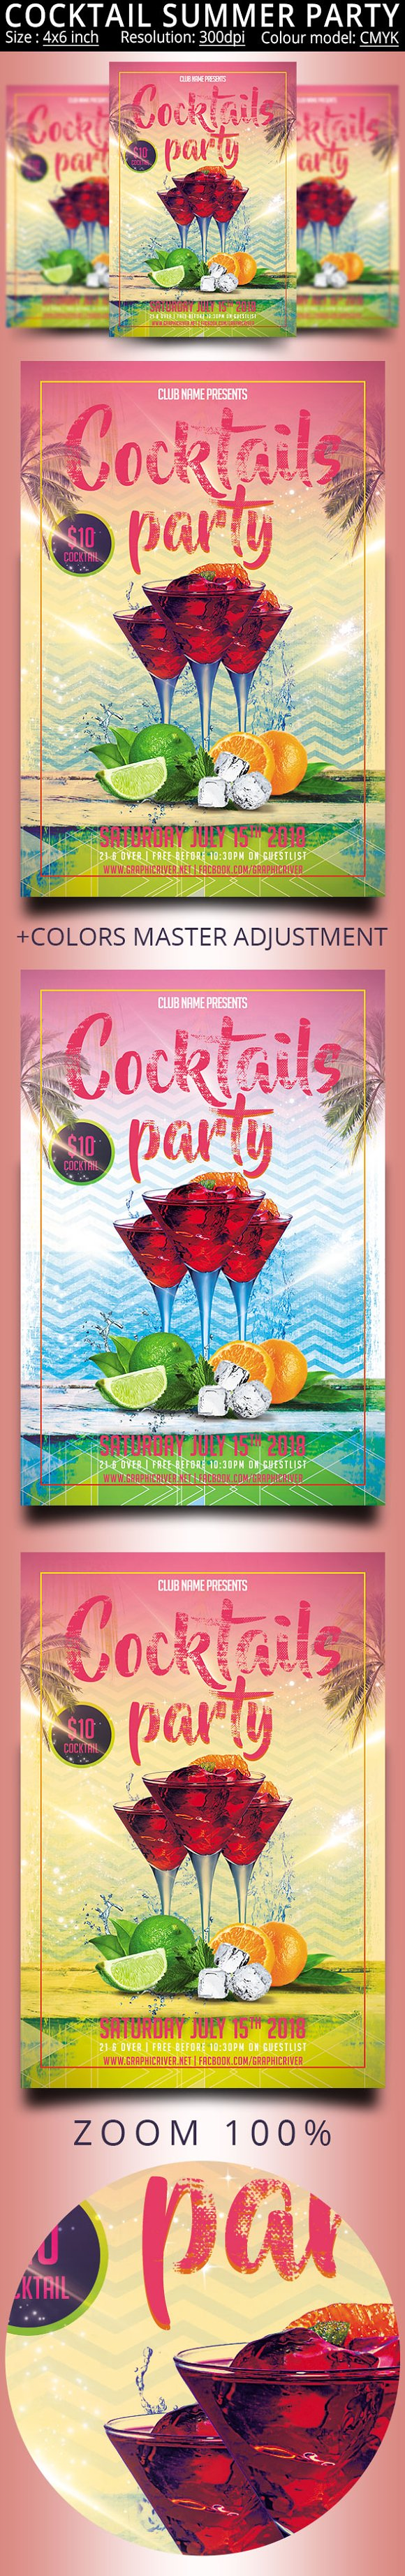 Cocktail Summer Party Flyer